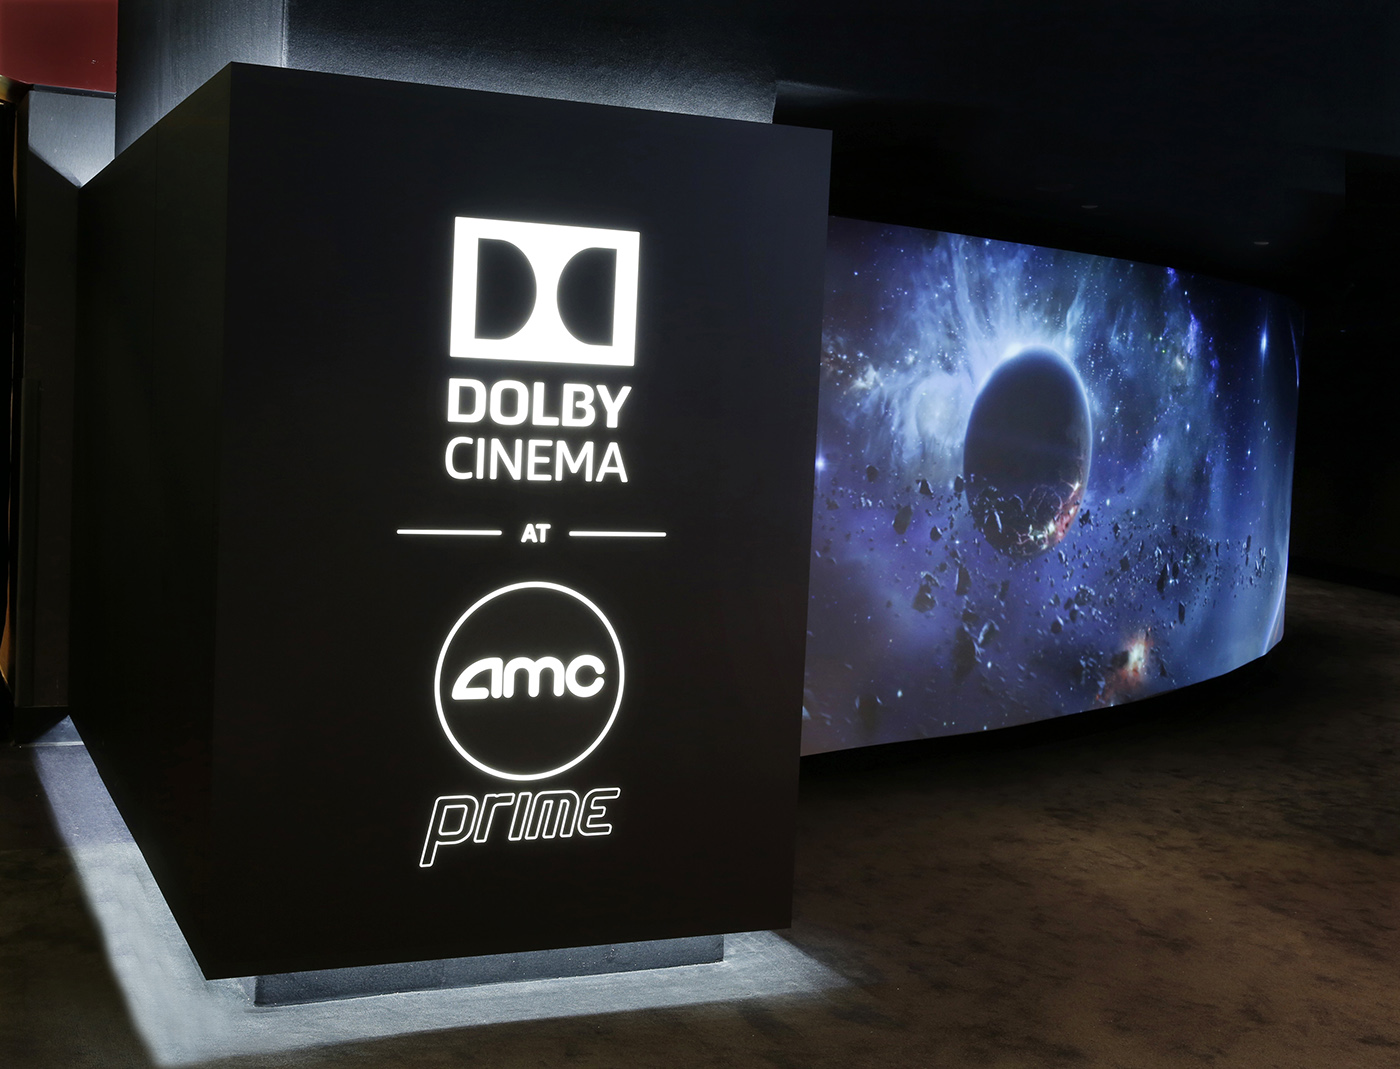 Dolby Cinema with AMC Prime at AMC16 in Burbank, California, Monday, October 5, 2015. (Photo by Paul Sakuma Photography) www.paulsakuma.oom